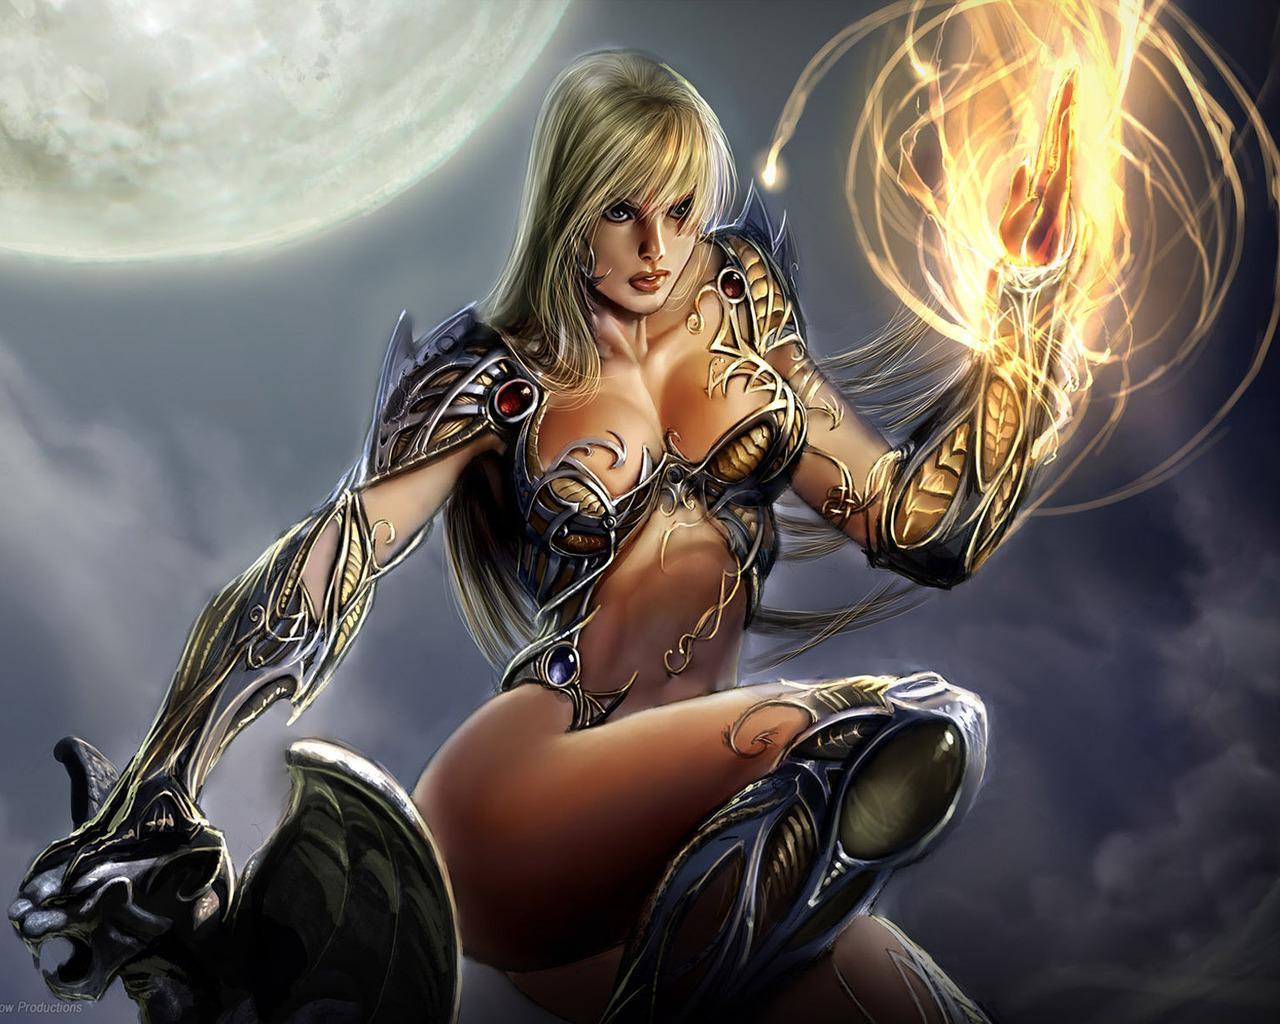 Warrior woman fantasyporn pictures sex movies